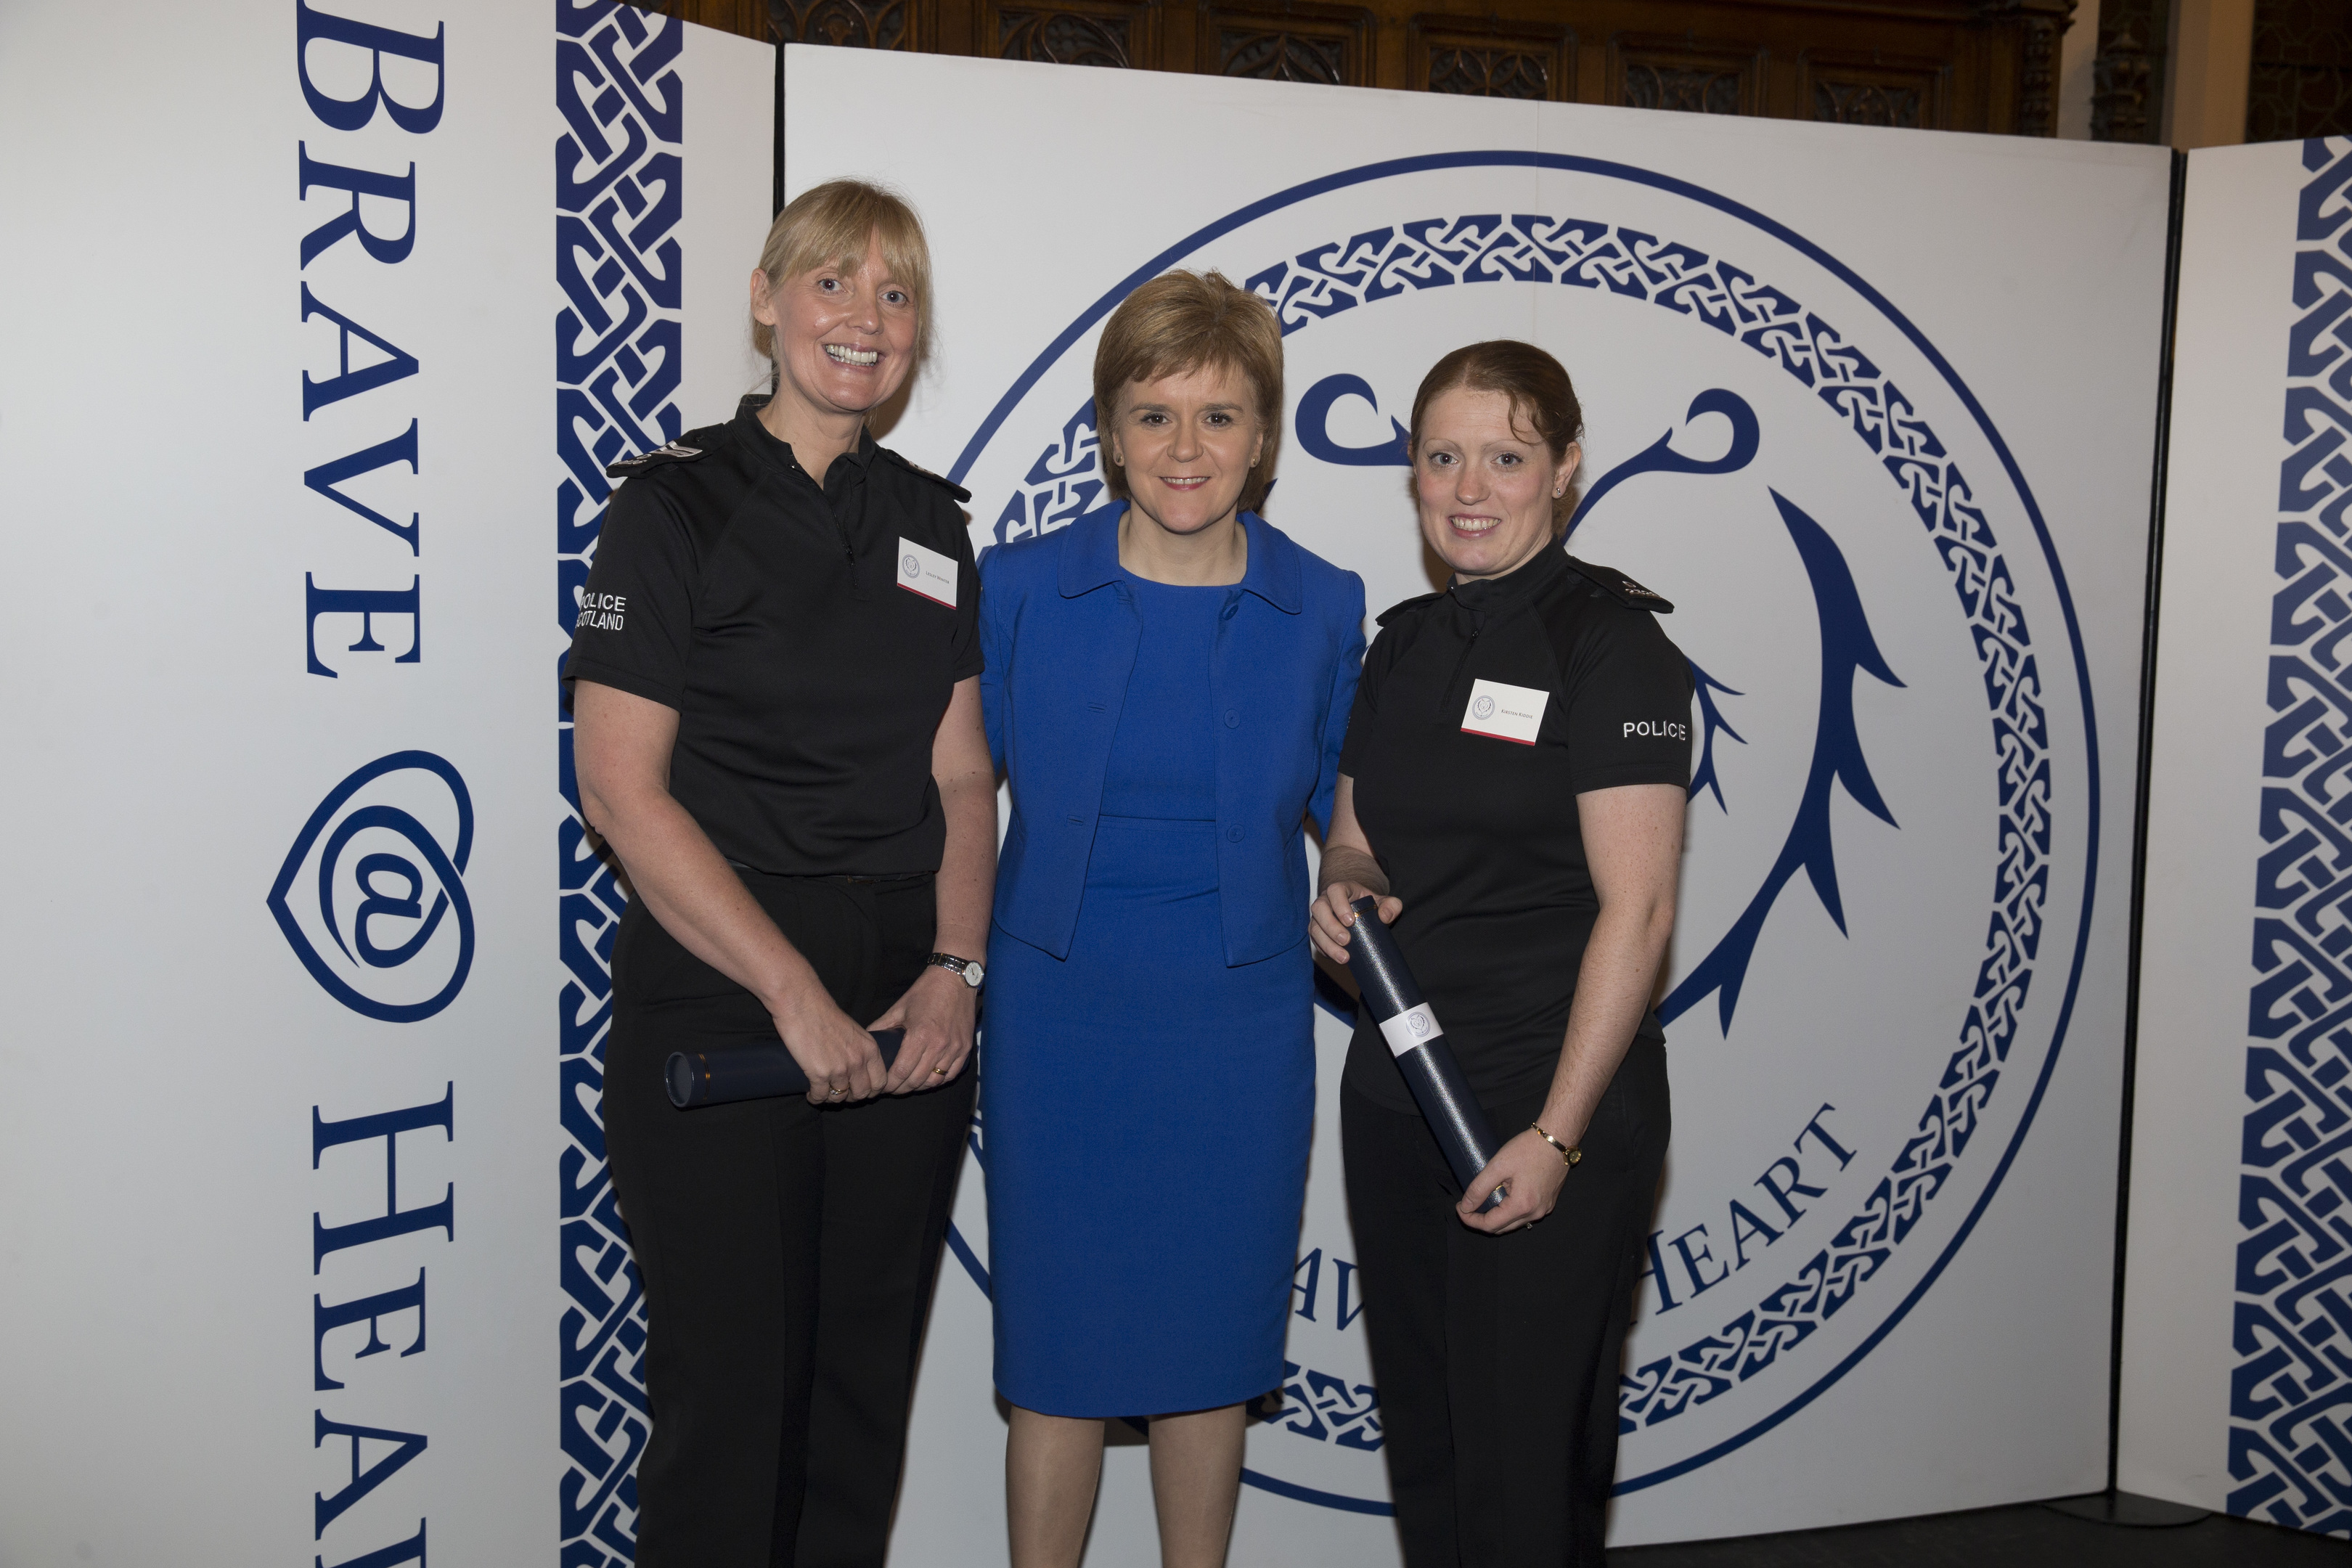 Sergeant Lesley Winter and PC Kirsten Kiddie with First Minister Nicola Sturgeon at the Brave@Heart awards.